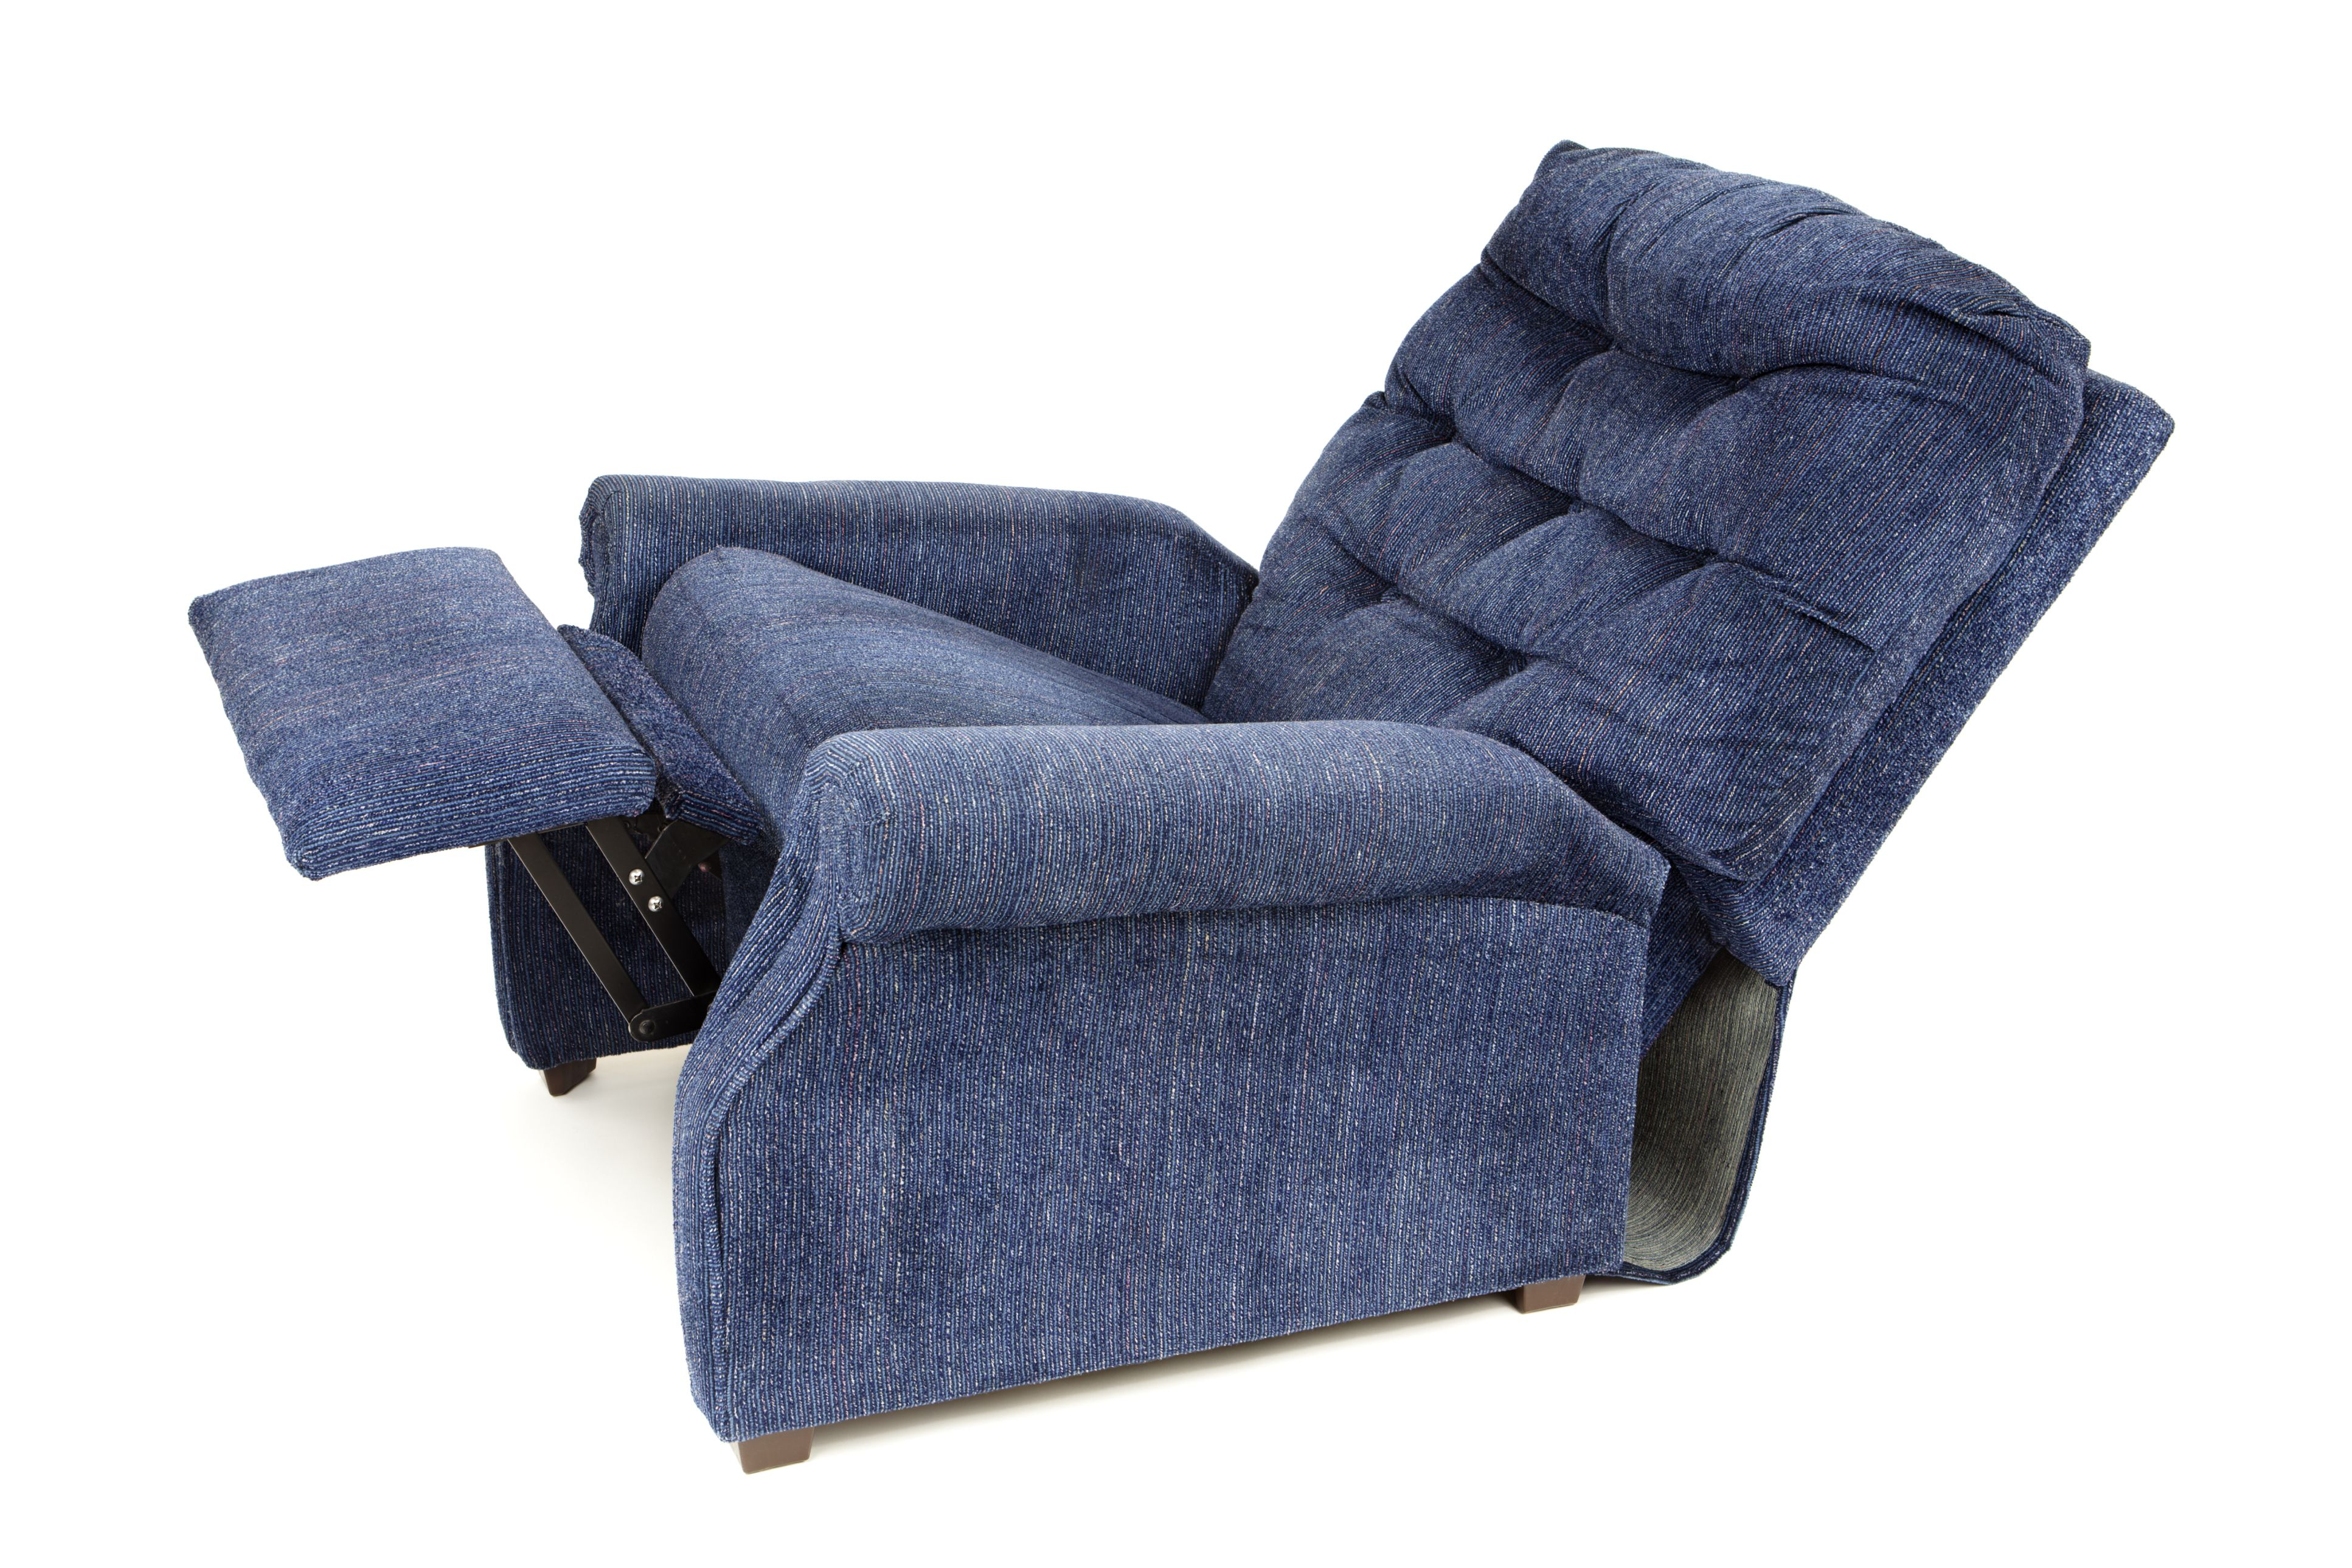 Rent a Recliner for Your Cruise Hotel Room or Cottage